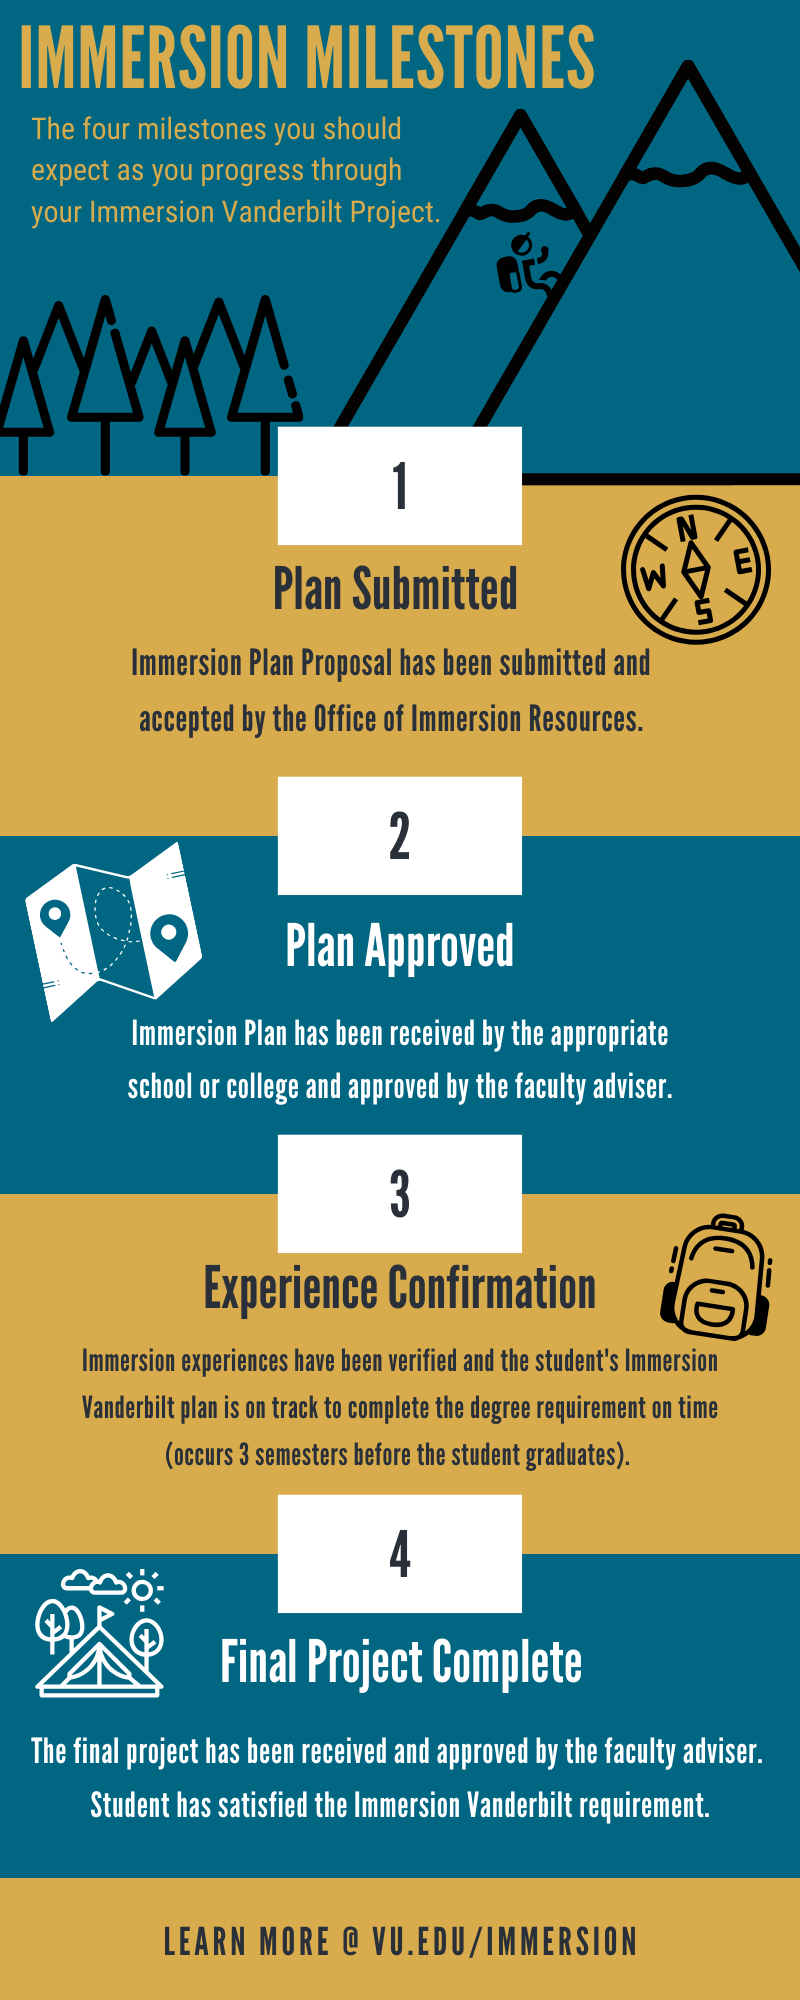 Infographic displaying four check-in points for students to monitor their progress completing the Immersion Vanderbilt degree requirement